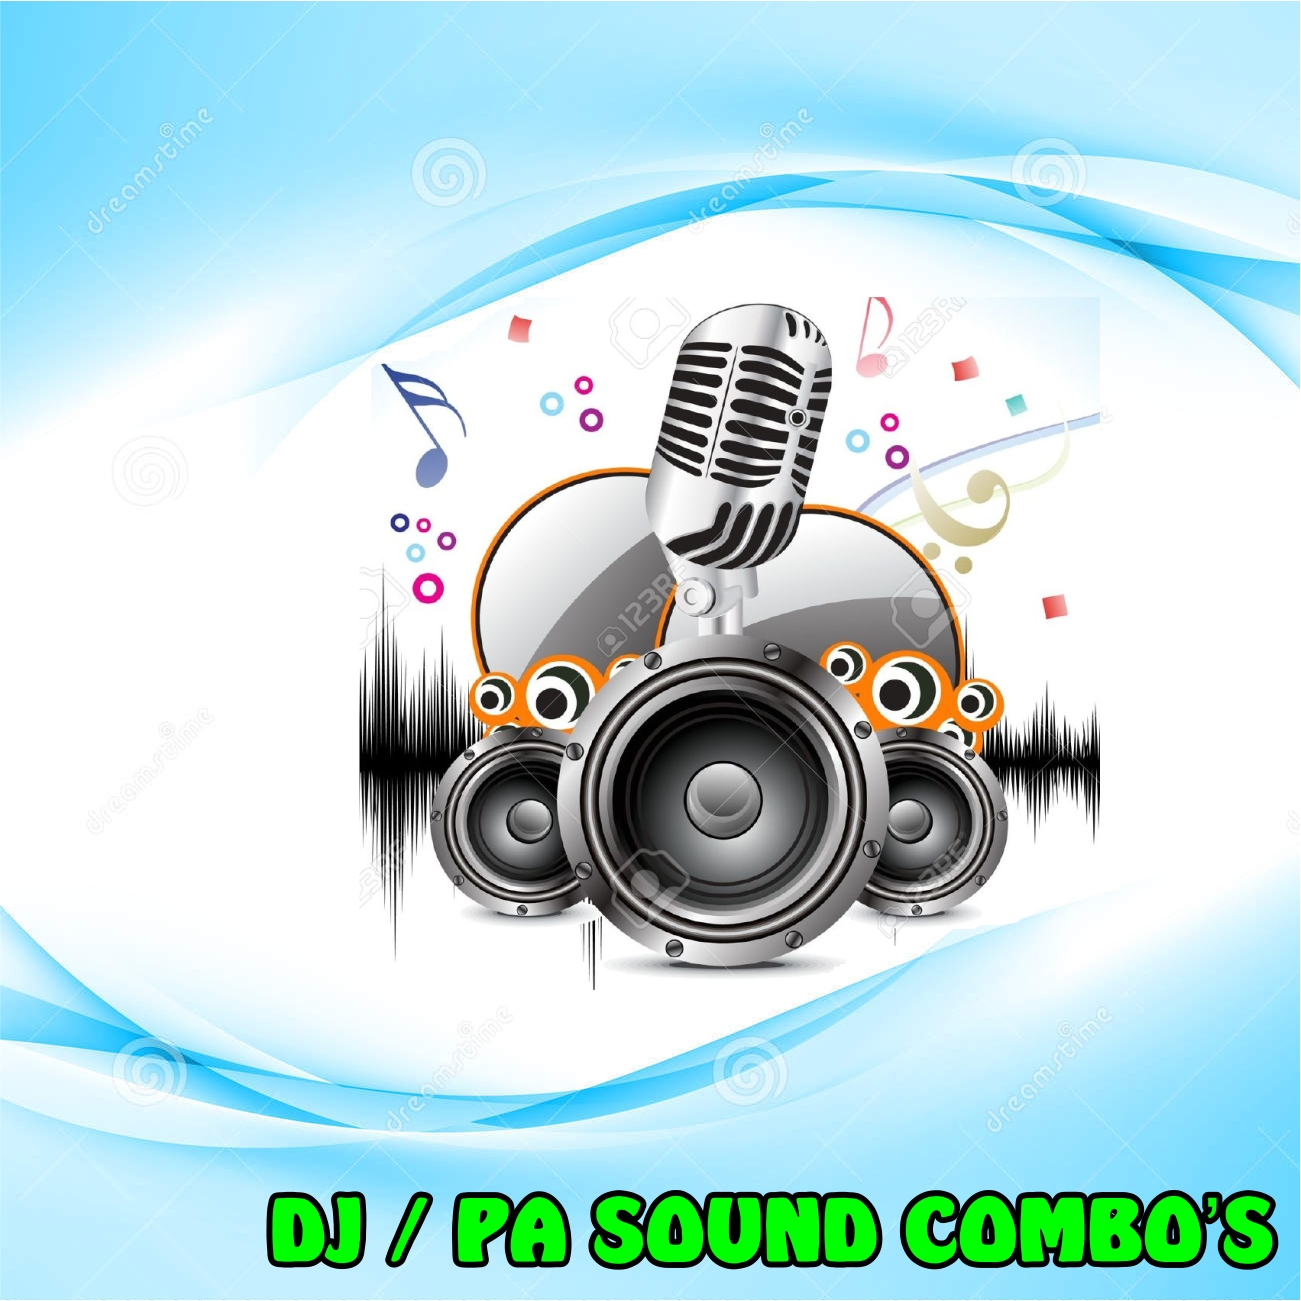 CLICK ME FOR SOUND DJ EQUIPMENT PACKAGES SOUND COMBO DJ EQUIPMENT PACKAGES EXCLUSIVE TO GRAVITY DJ STORE 0315072736